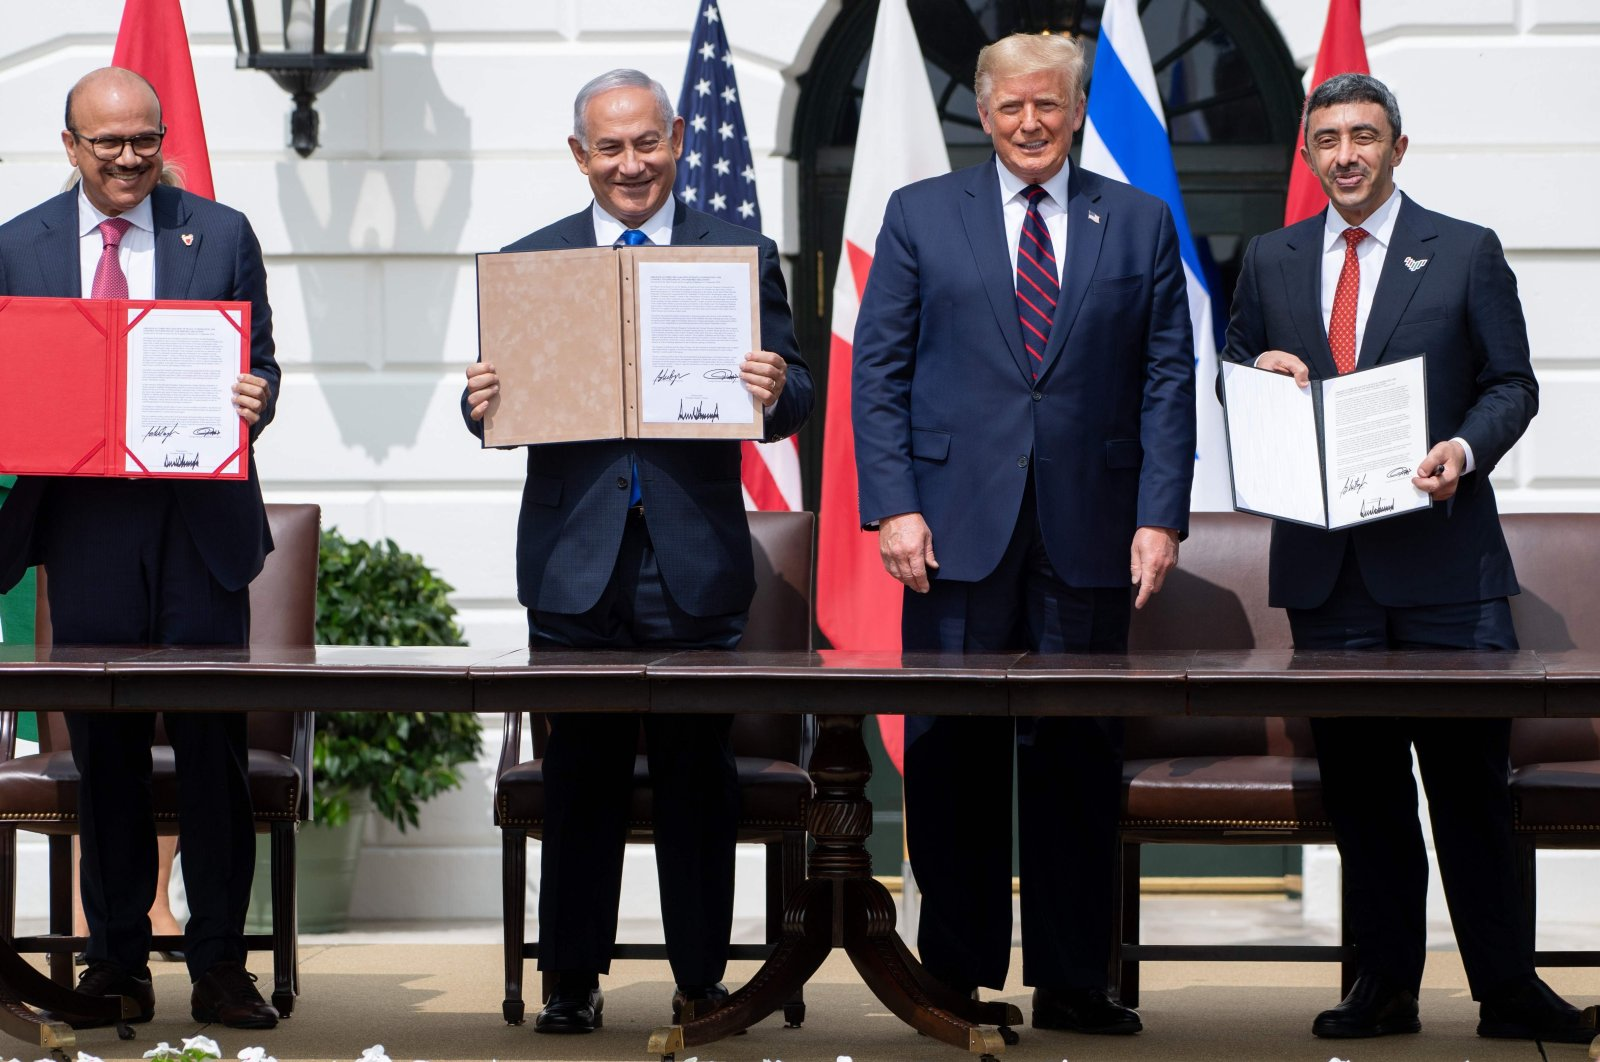 (L-R) Bahrain Foreign Minister Abdullatif bin Rashid Alzayani, Israeli Prime Minister Benjamin Netanyahu, U.S. President Donald Trump, and UAE Foreign Minister Abdullah bin Zayed Al Nahyan hold up documents after participating in the signing of the Abraham Accords, Washington, D.C., Sept.15, 2020. (AFP Photo)